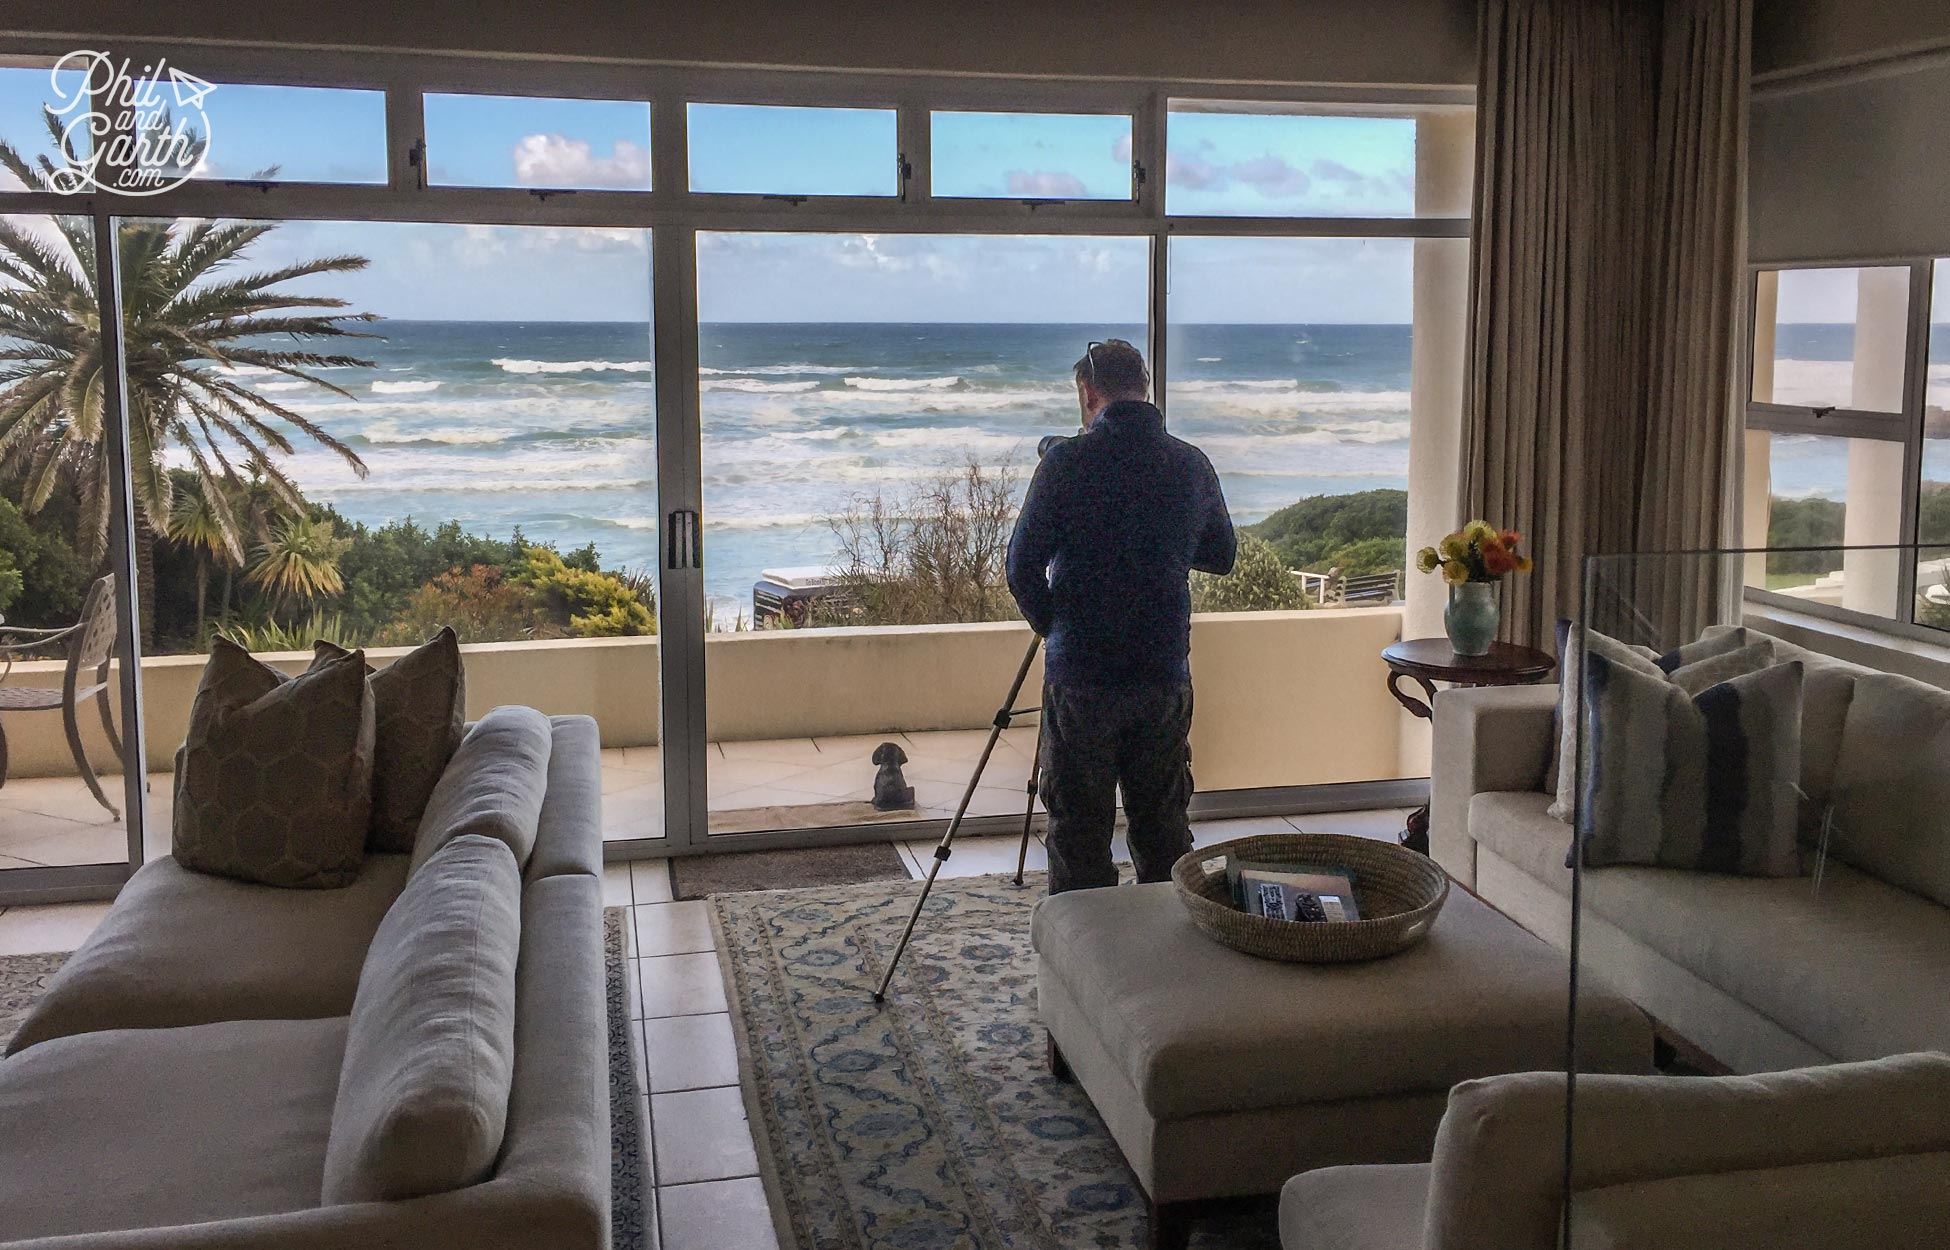 Hows this for a view! Garth spotting whales through a monocular at our hotel